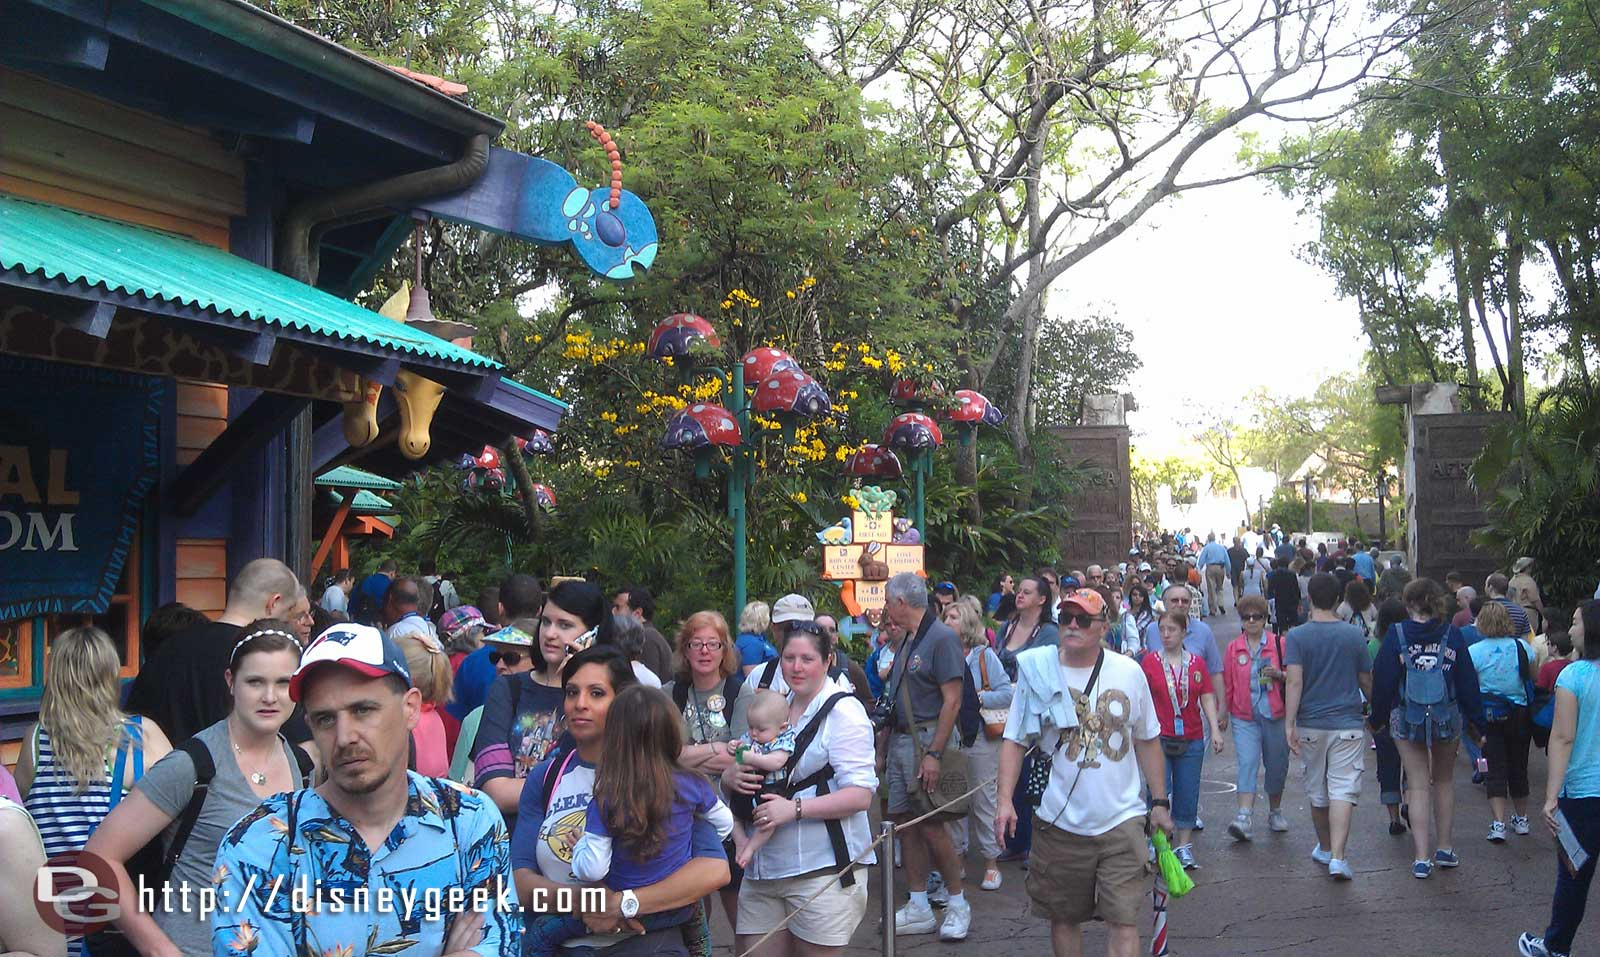 The merchandise line stretches from Creature Comforts back into Harambe and wraps around out there #DAK15